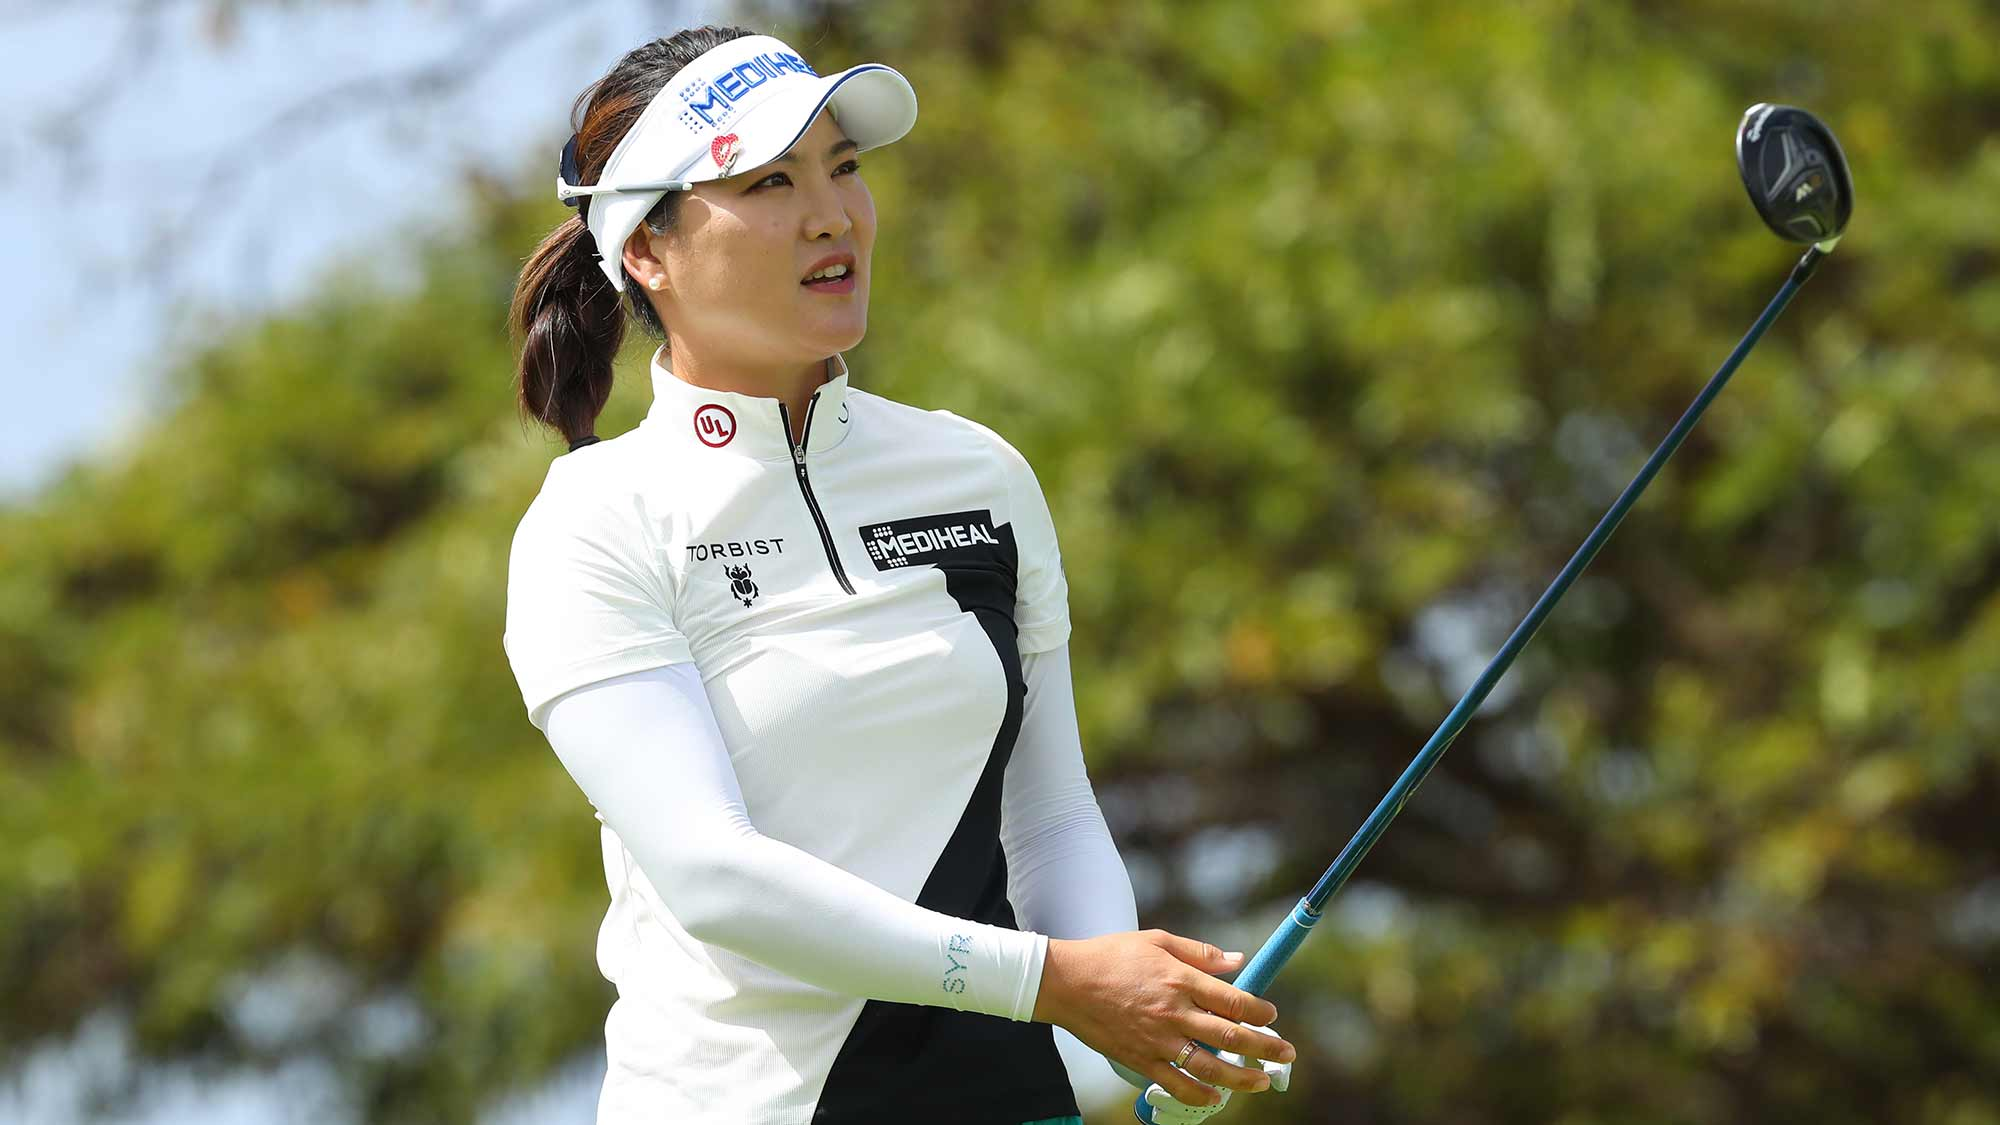 So Yeon Ryu of South Korea watches her tee shot on the 17th hole during the first round of the LOTTE Championship on April 18, 2019 in Kapolei, Hawaii